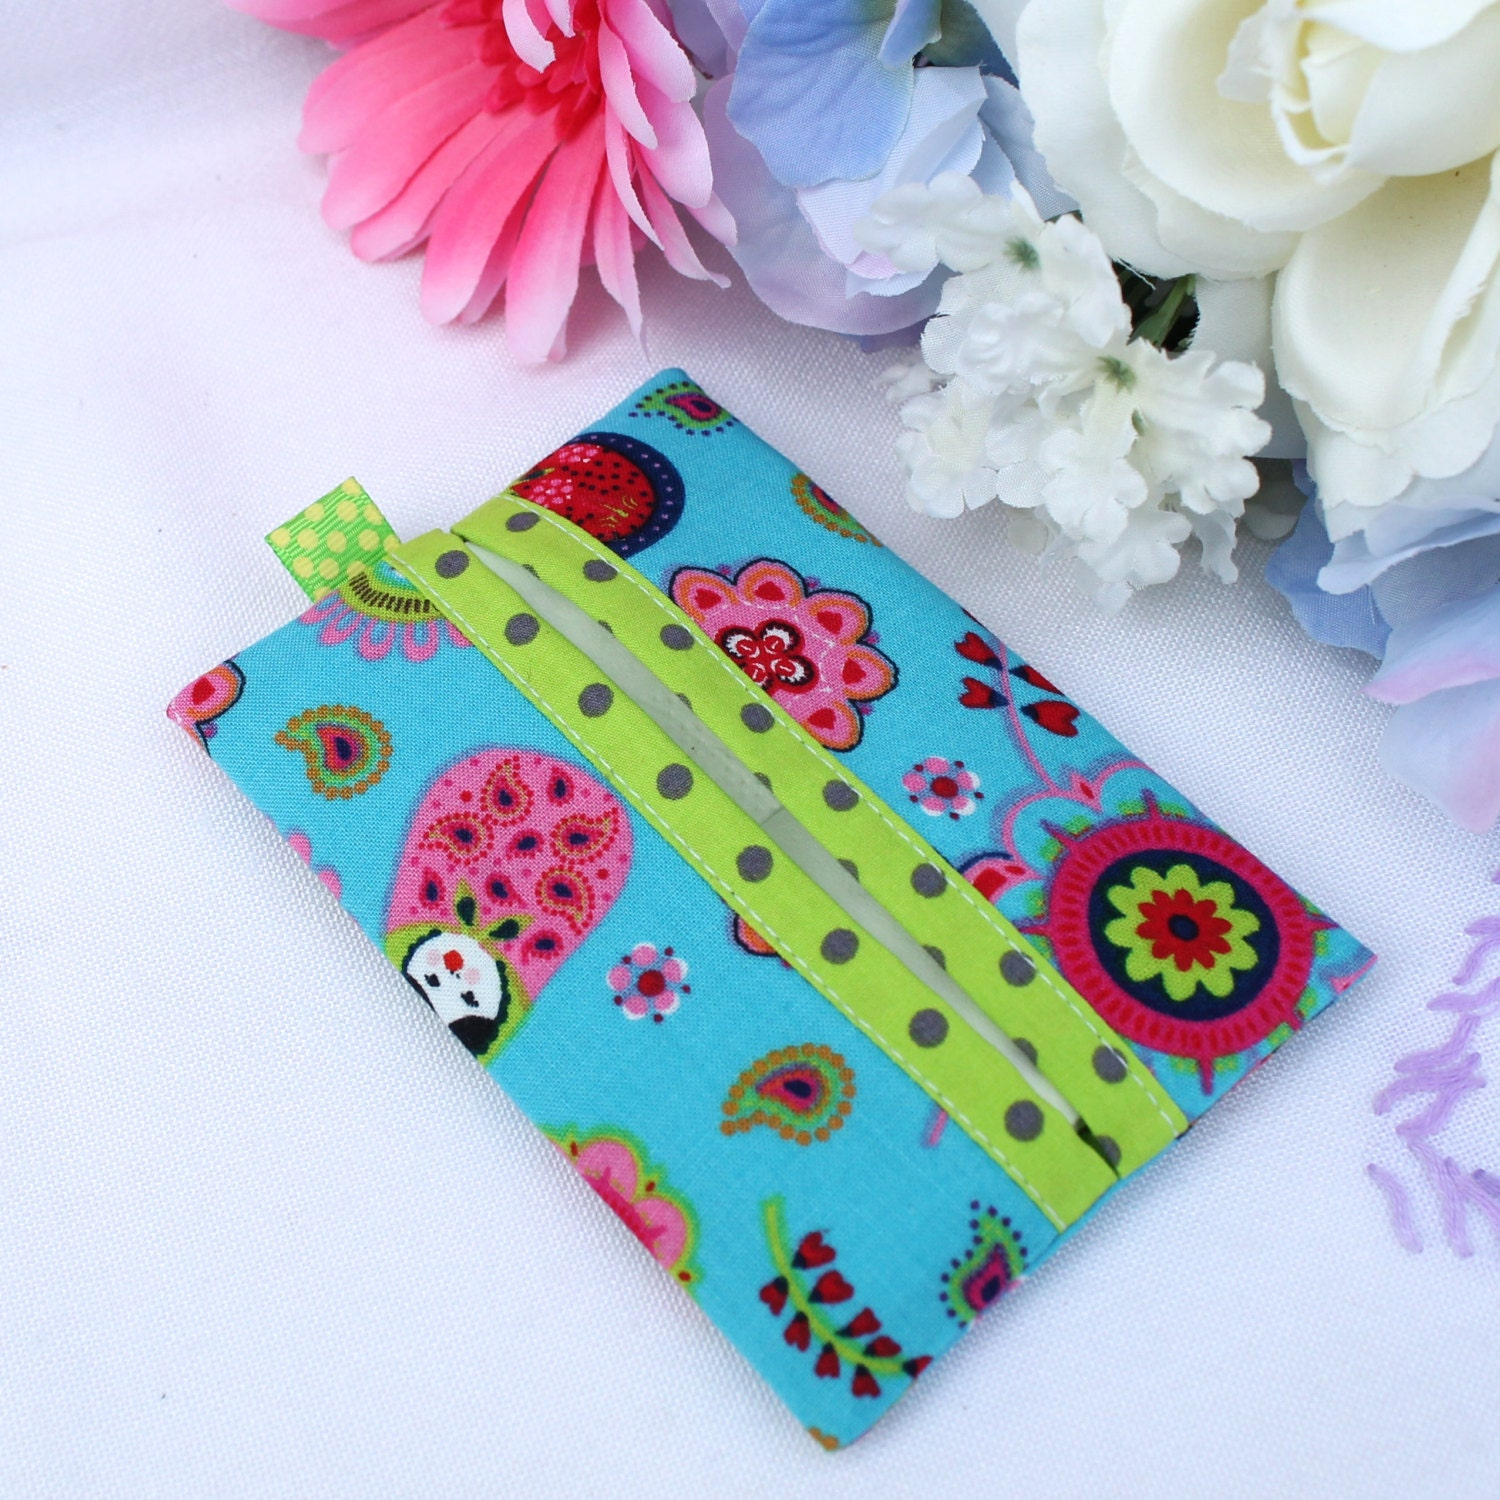 Pocket tissue holder Kleenex case  Russian Doll matryoshka  turquoise red lime green